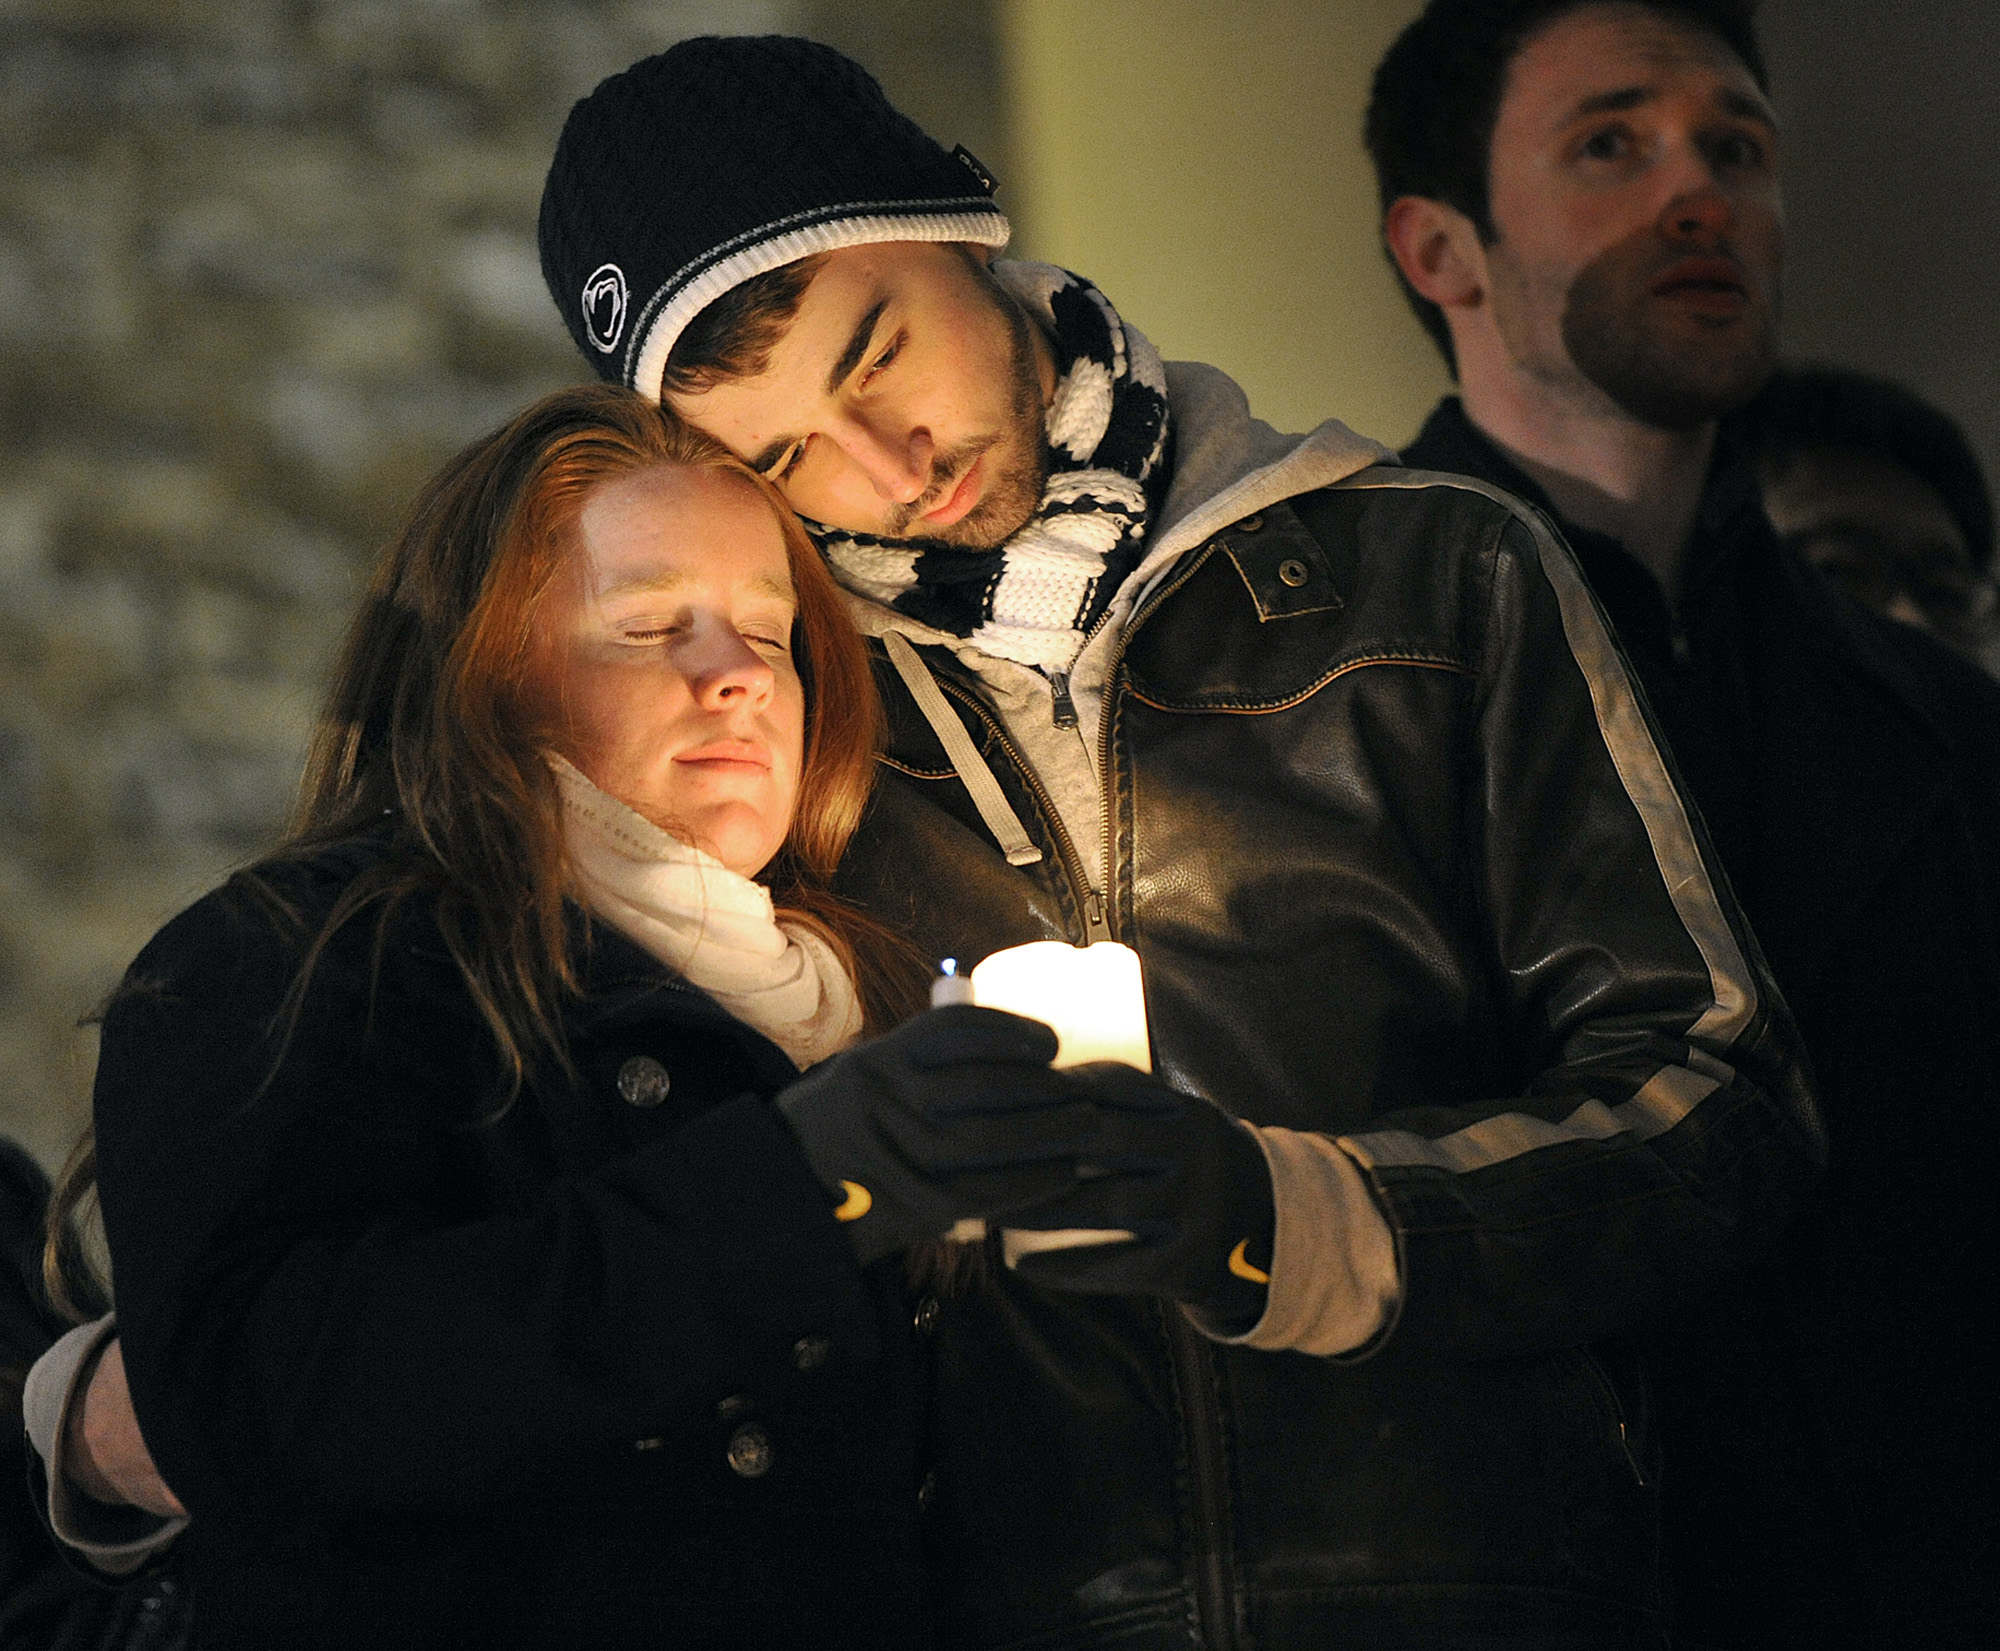 Andrew Adamietz (sophomore-secondary english education) and Katie Knobloch (senior-elementary education), both members of Blue in the Face, embrace on the stairs of Old Main on Sunday night during the candlelit vigil in memorium of Joe Paterno.